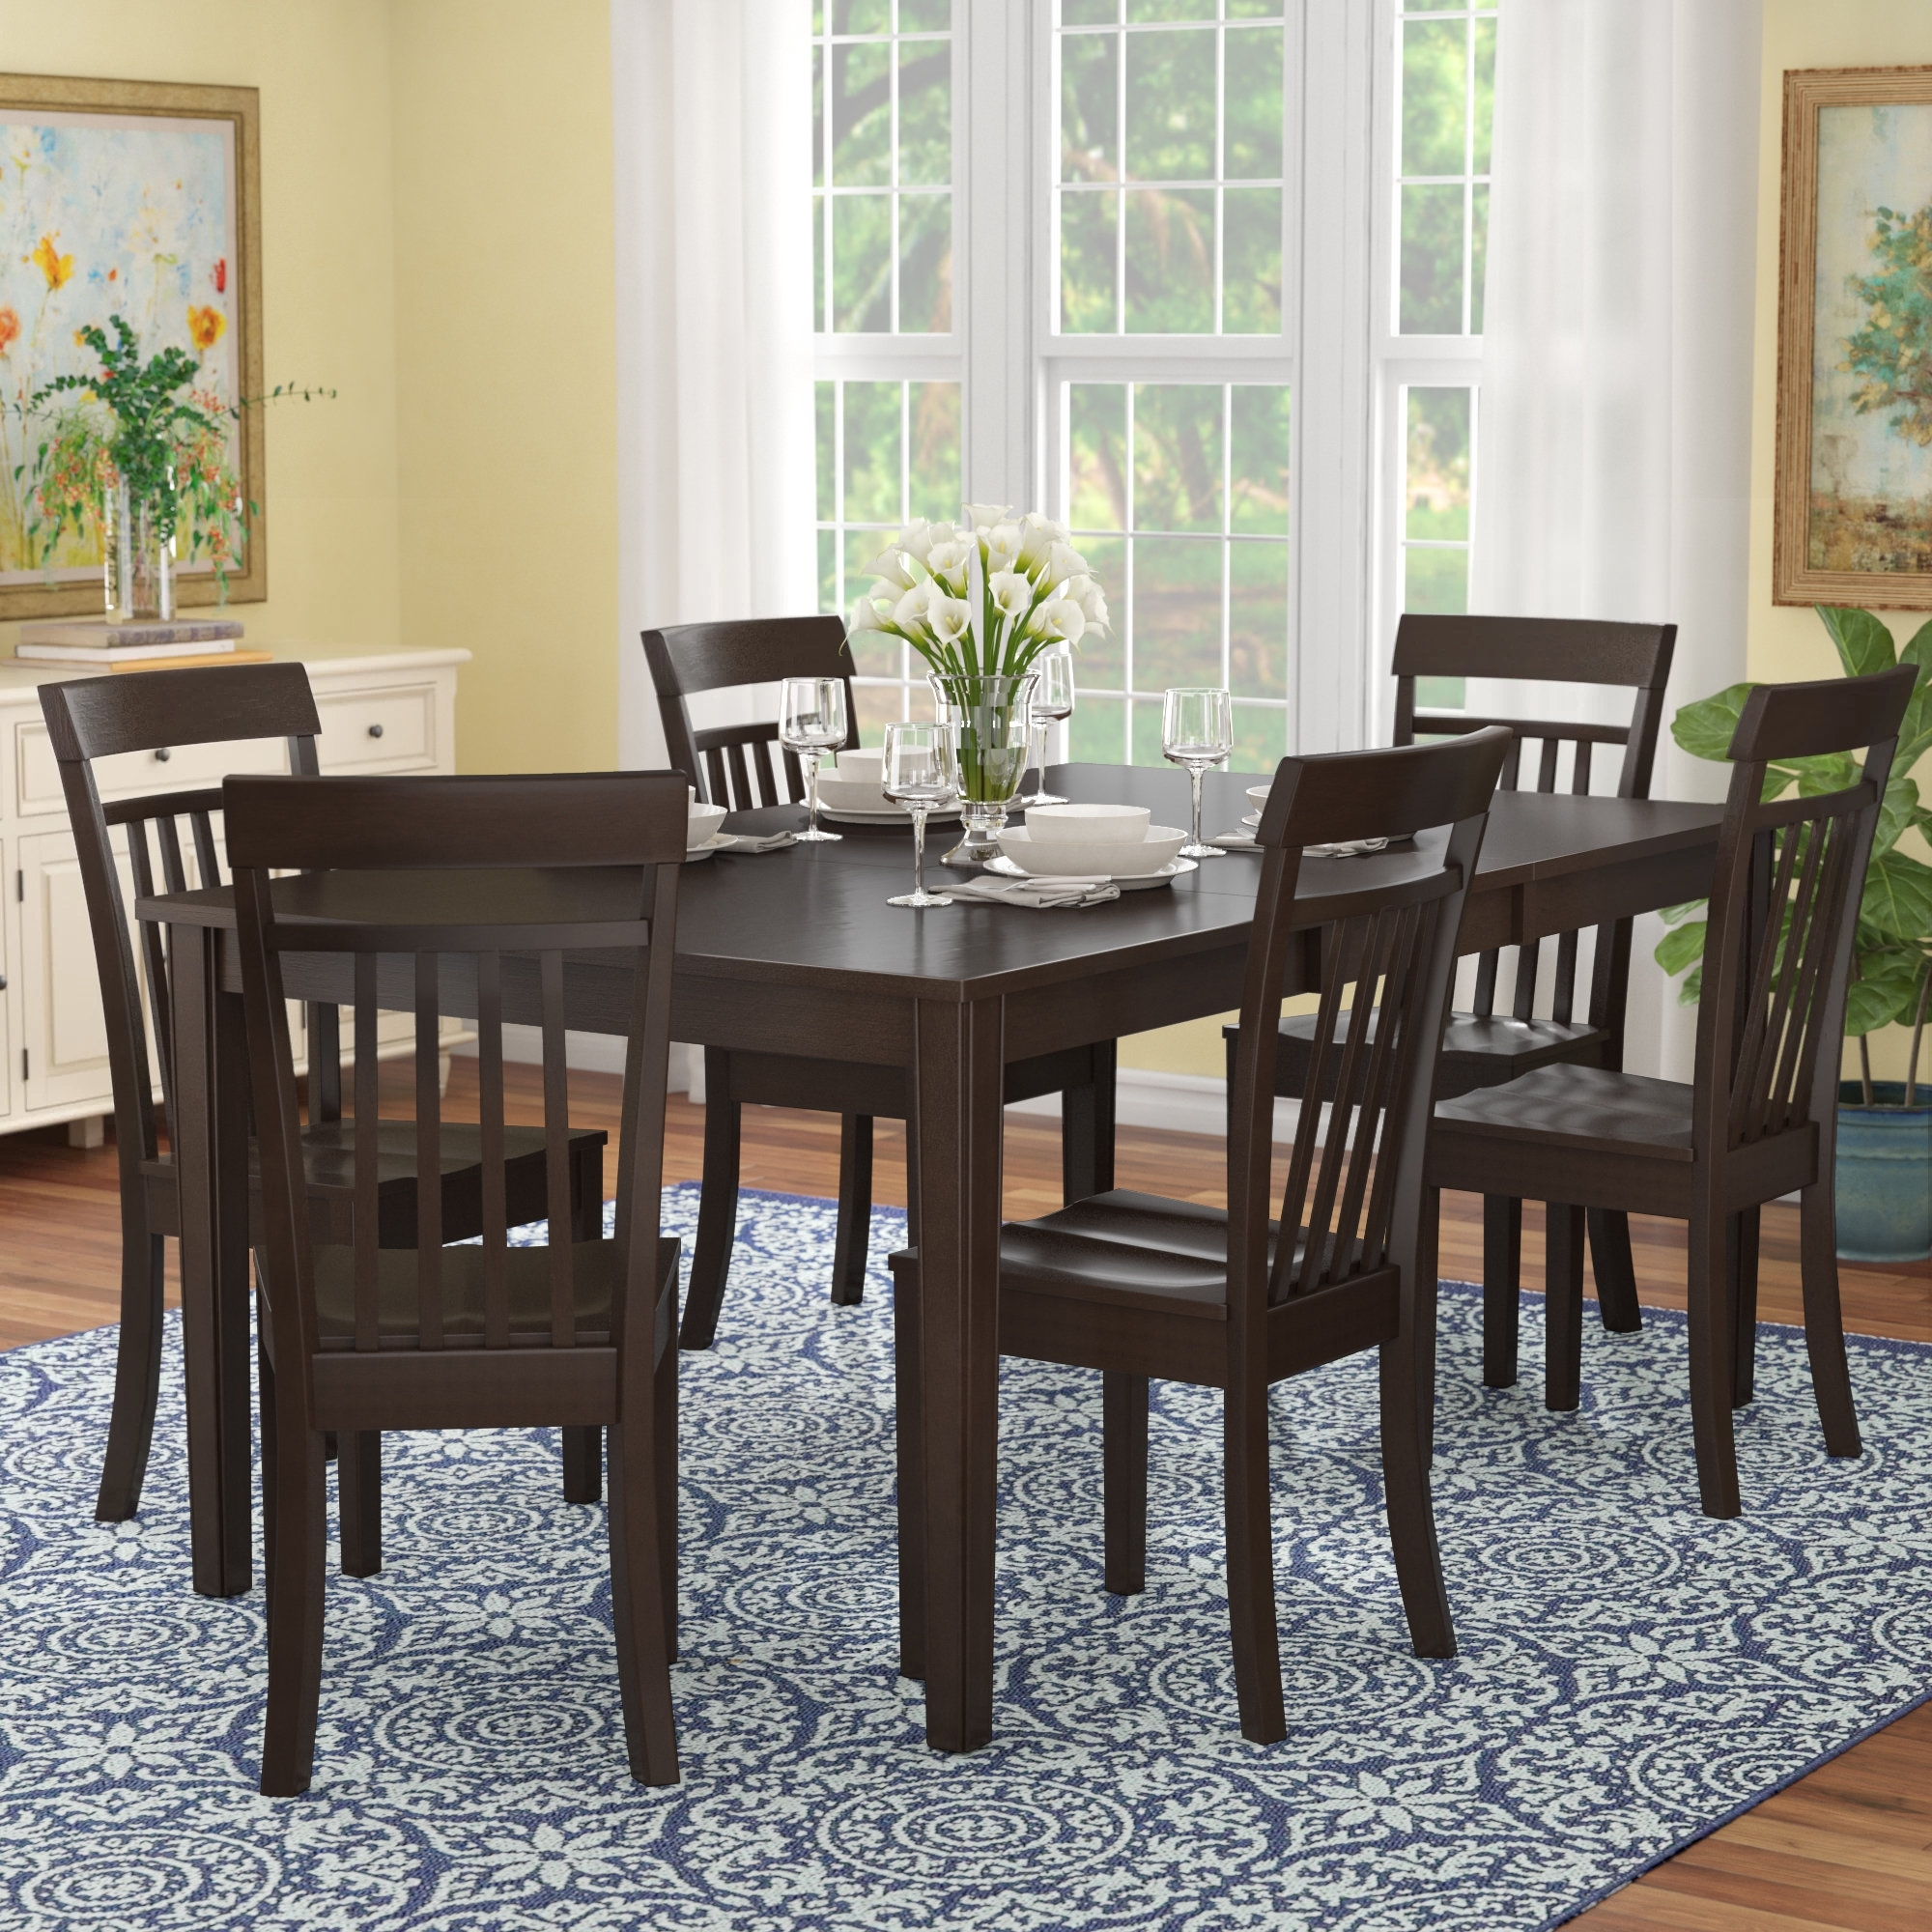 Well Liked Red Barrel Studio Lindstrom 7 Piece Dining Set & Reviews (View 11 of 25)